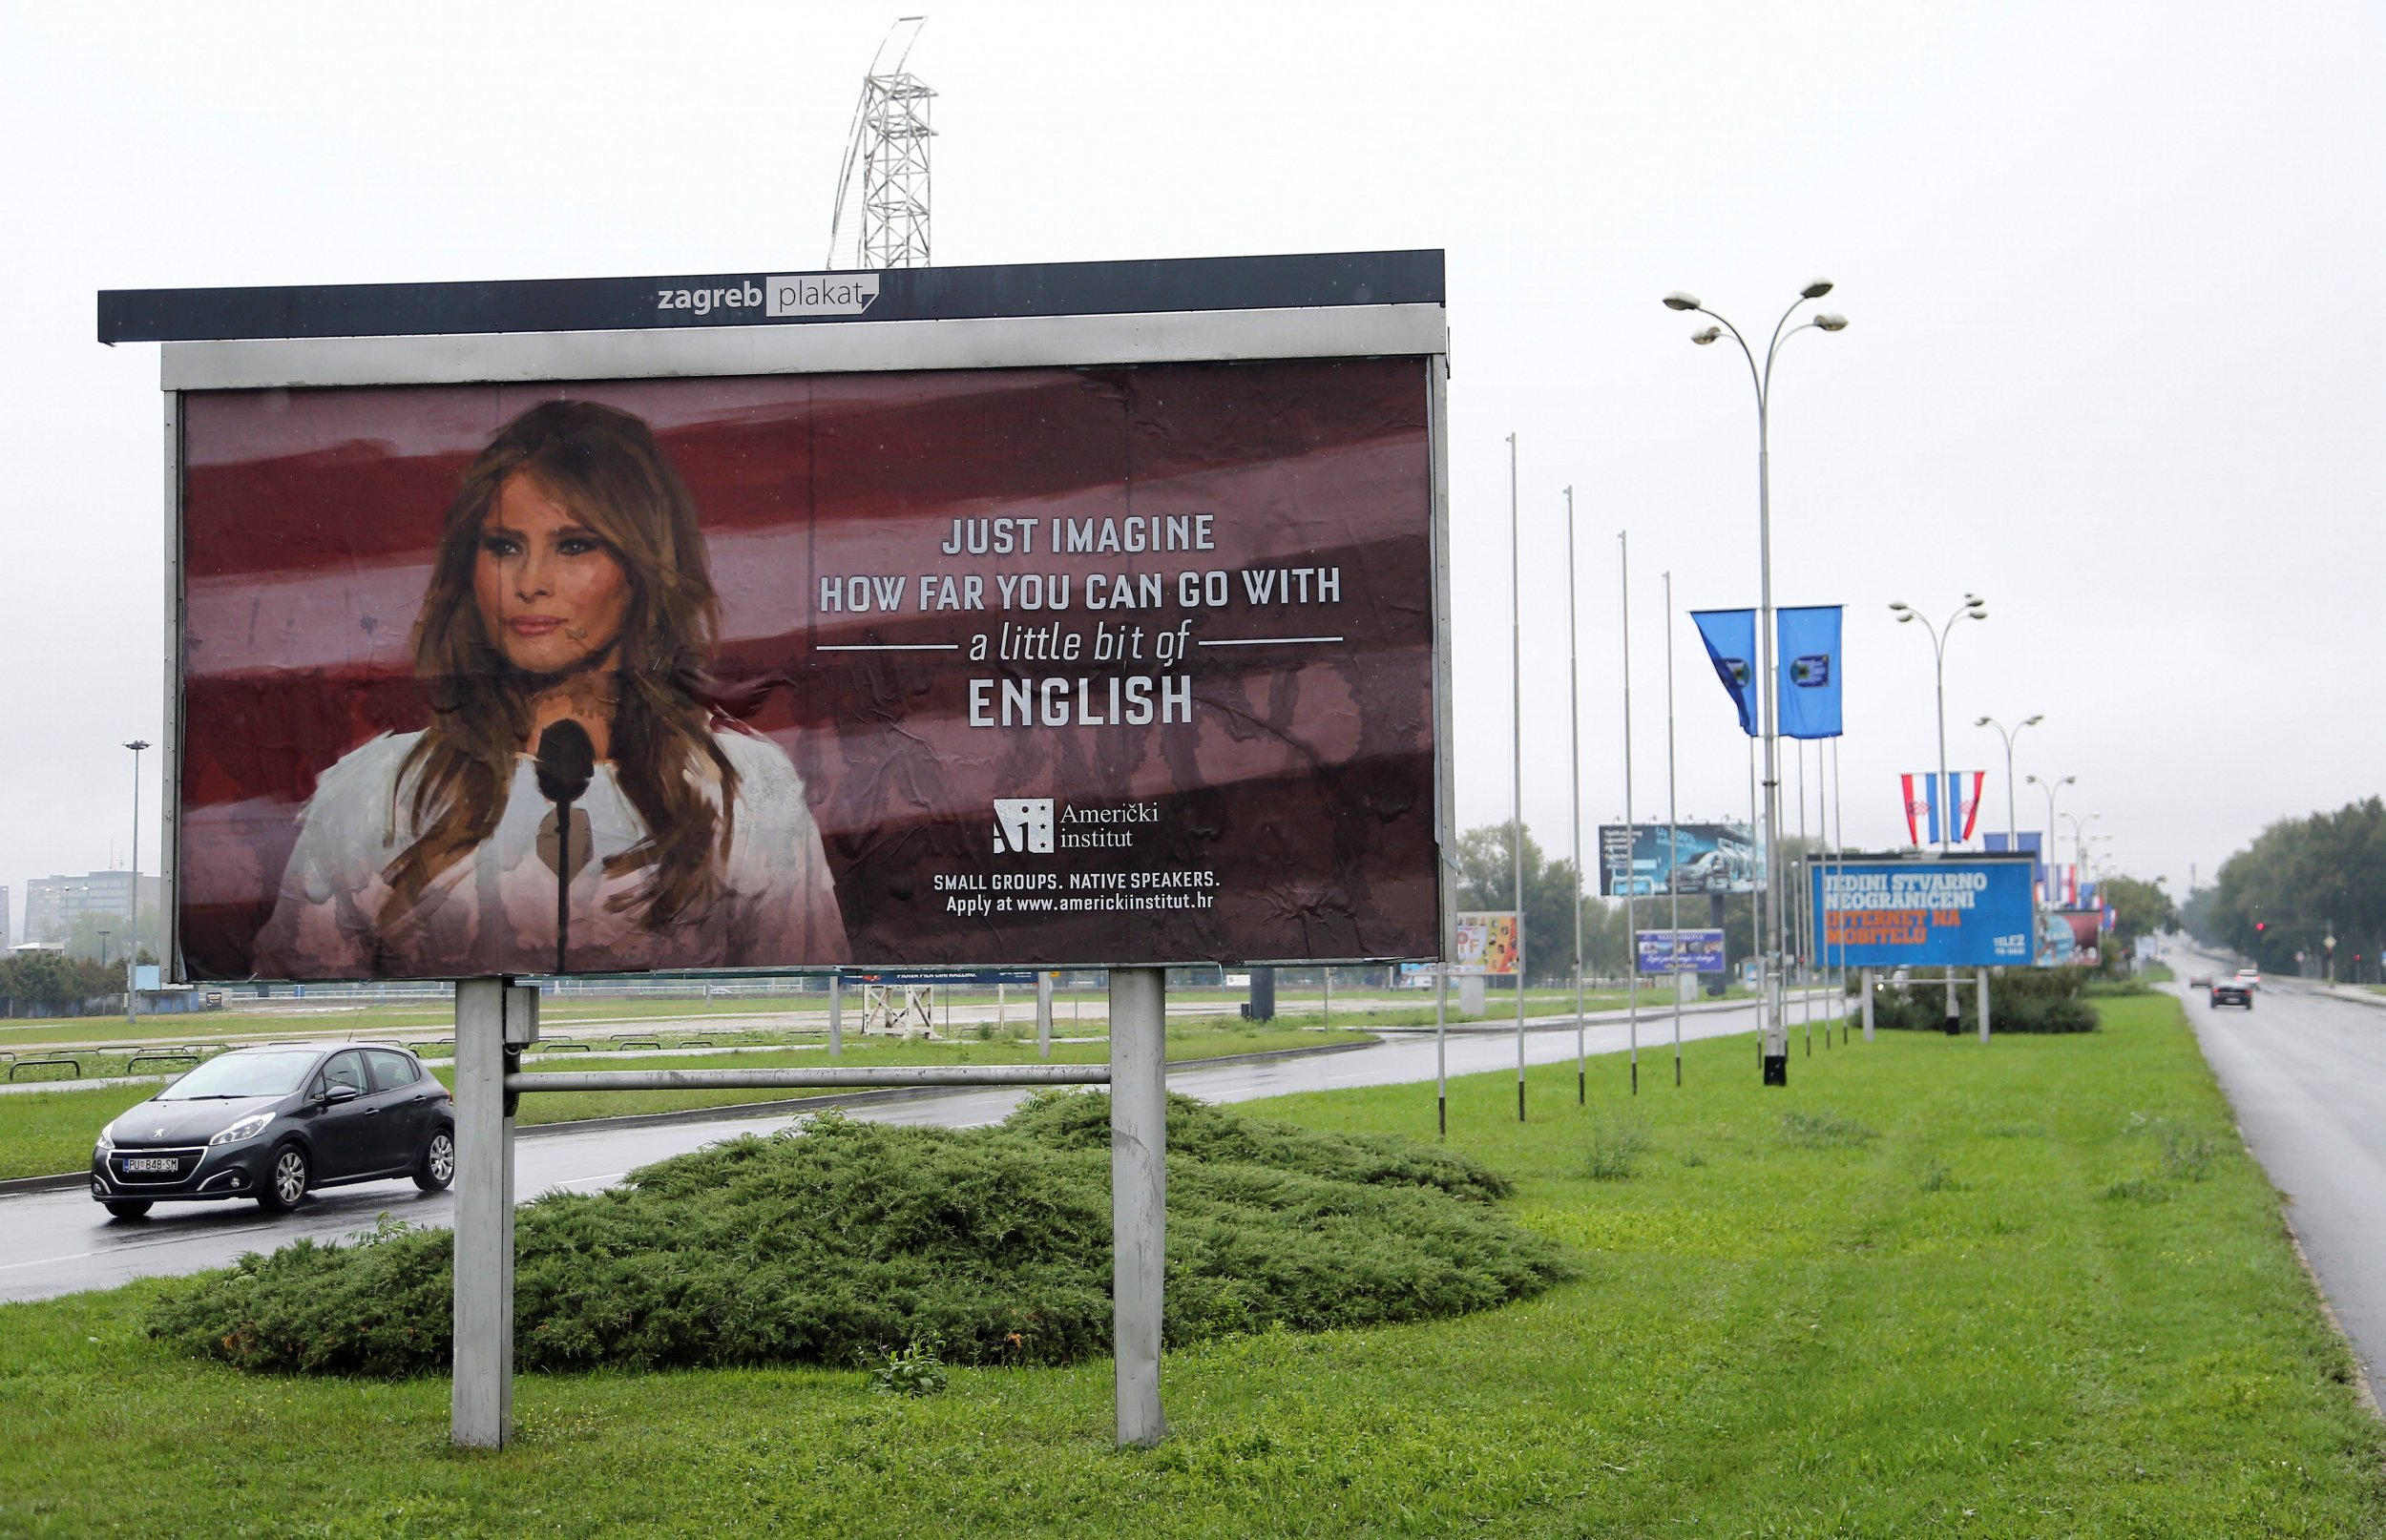 09_19_MelaniaTrump_Billboards_Croatia